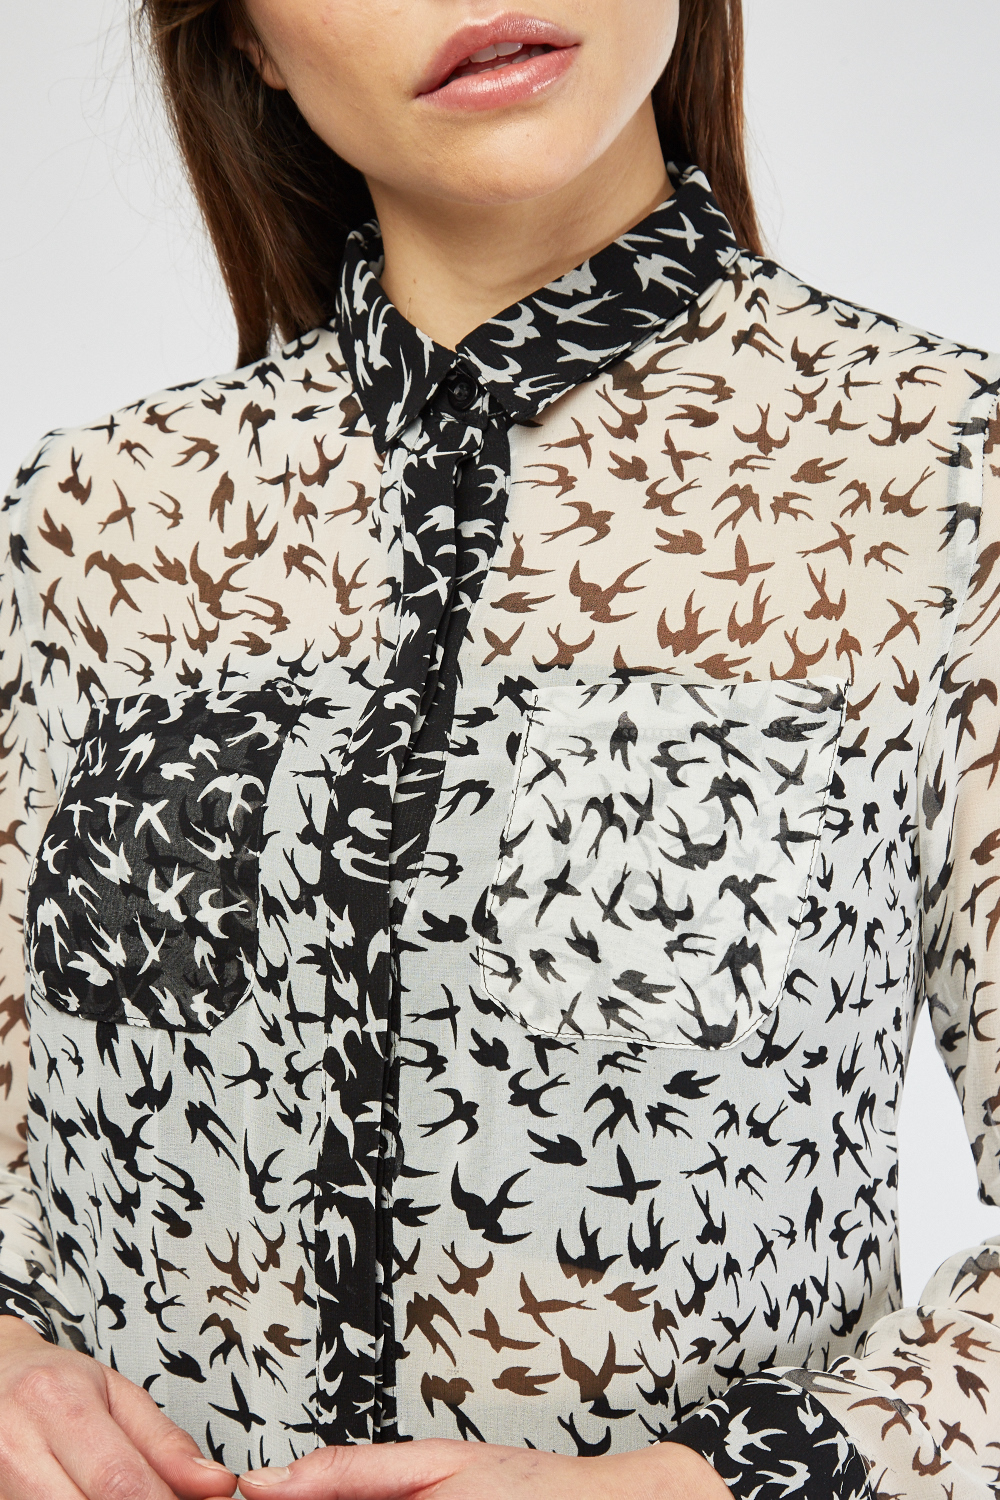 07f3821a11 Sheer Bird Print Blouse - Off White/Black - Just £5